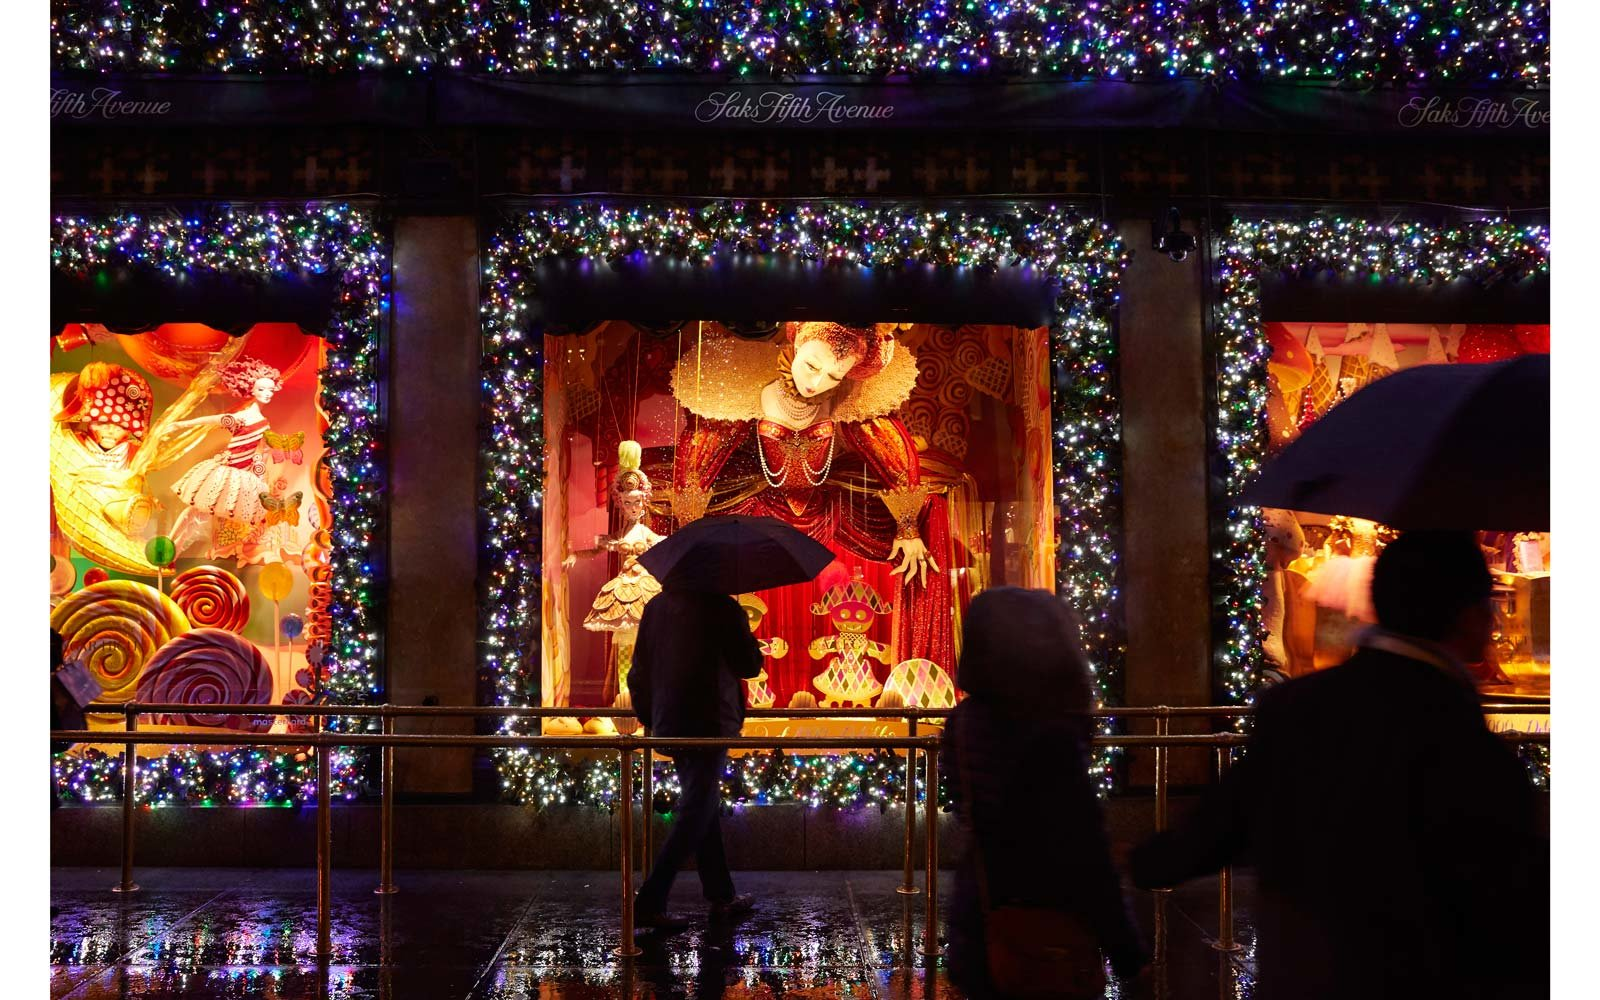 See New York City S Most Spectacular Christmas Windows